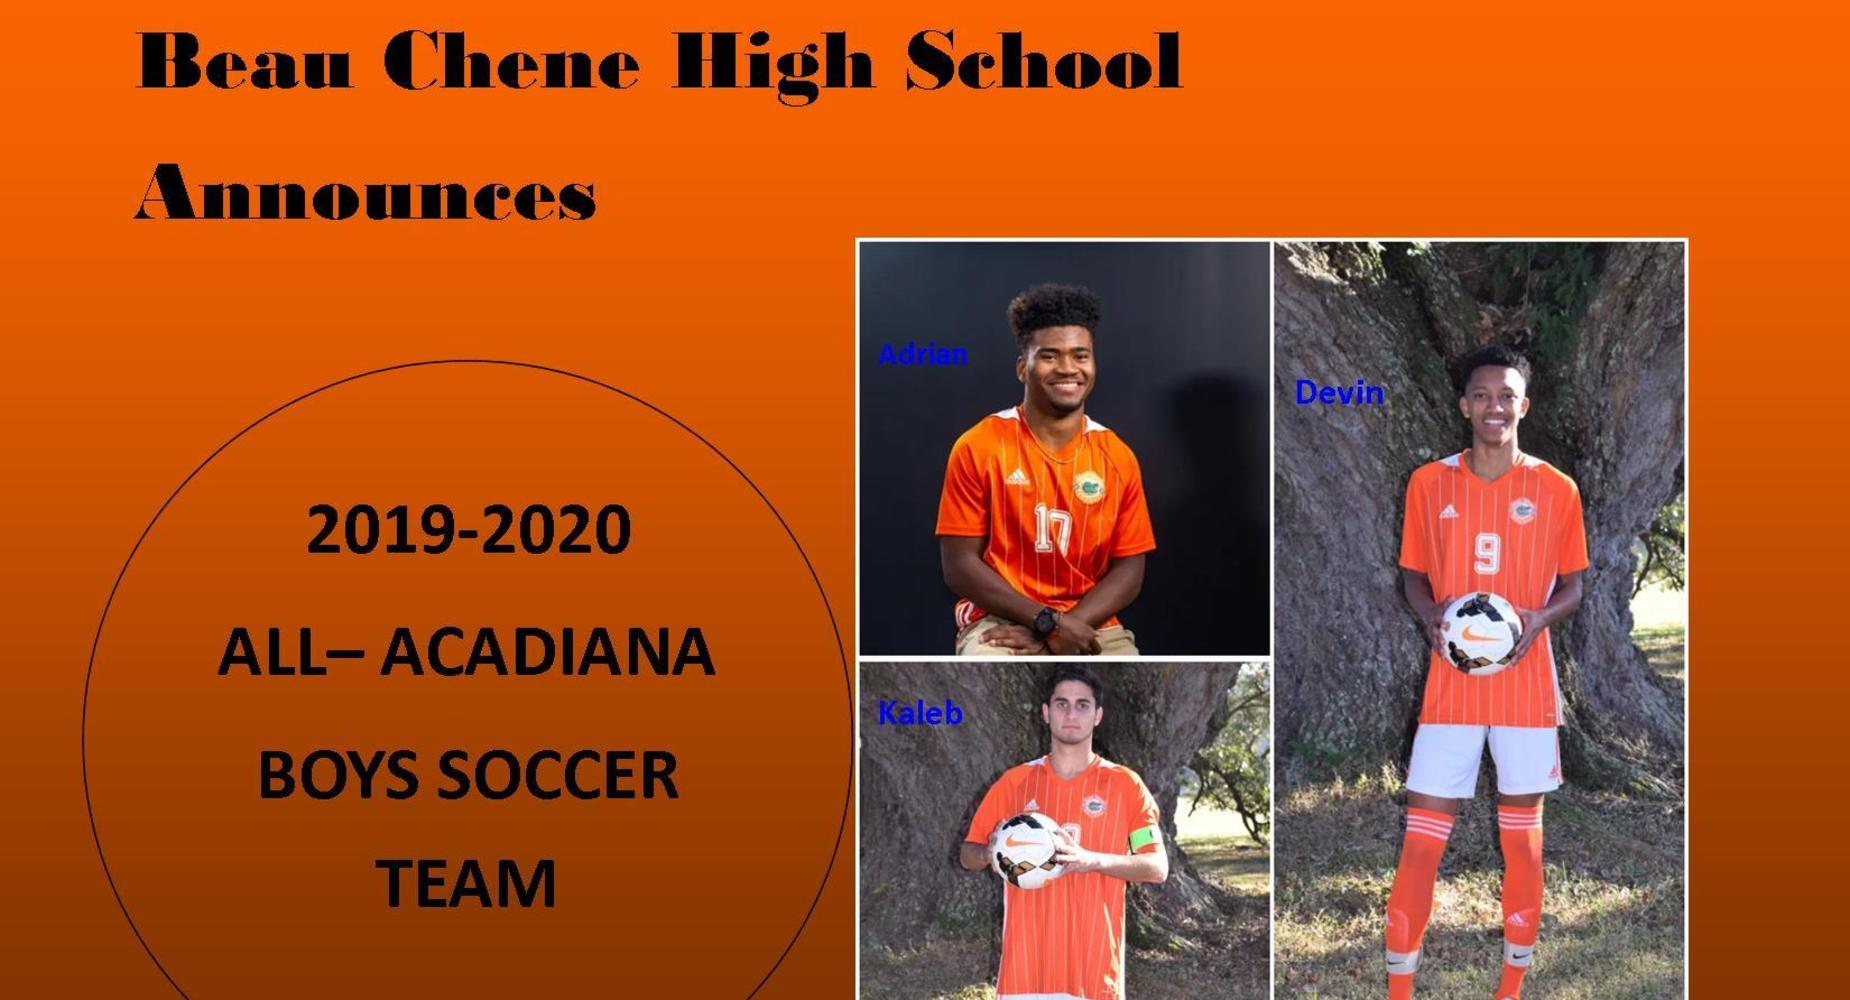 2019-2020-All State Acadiana Boys Soccer:  Adrian E., Kaleb D., and Devin A.